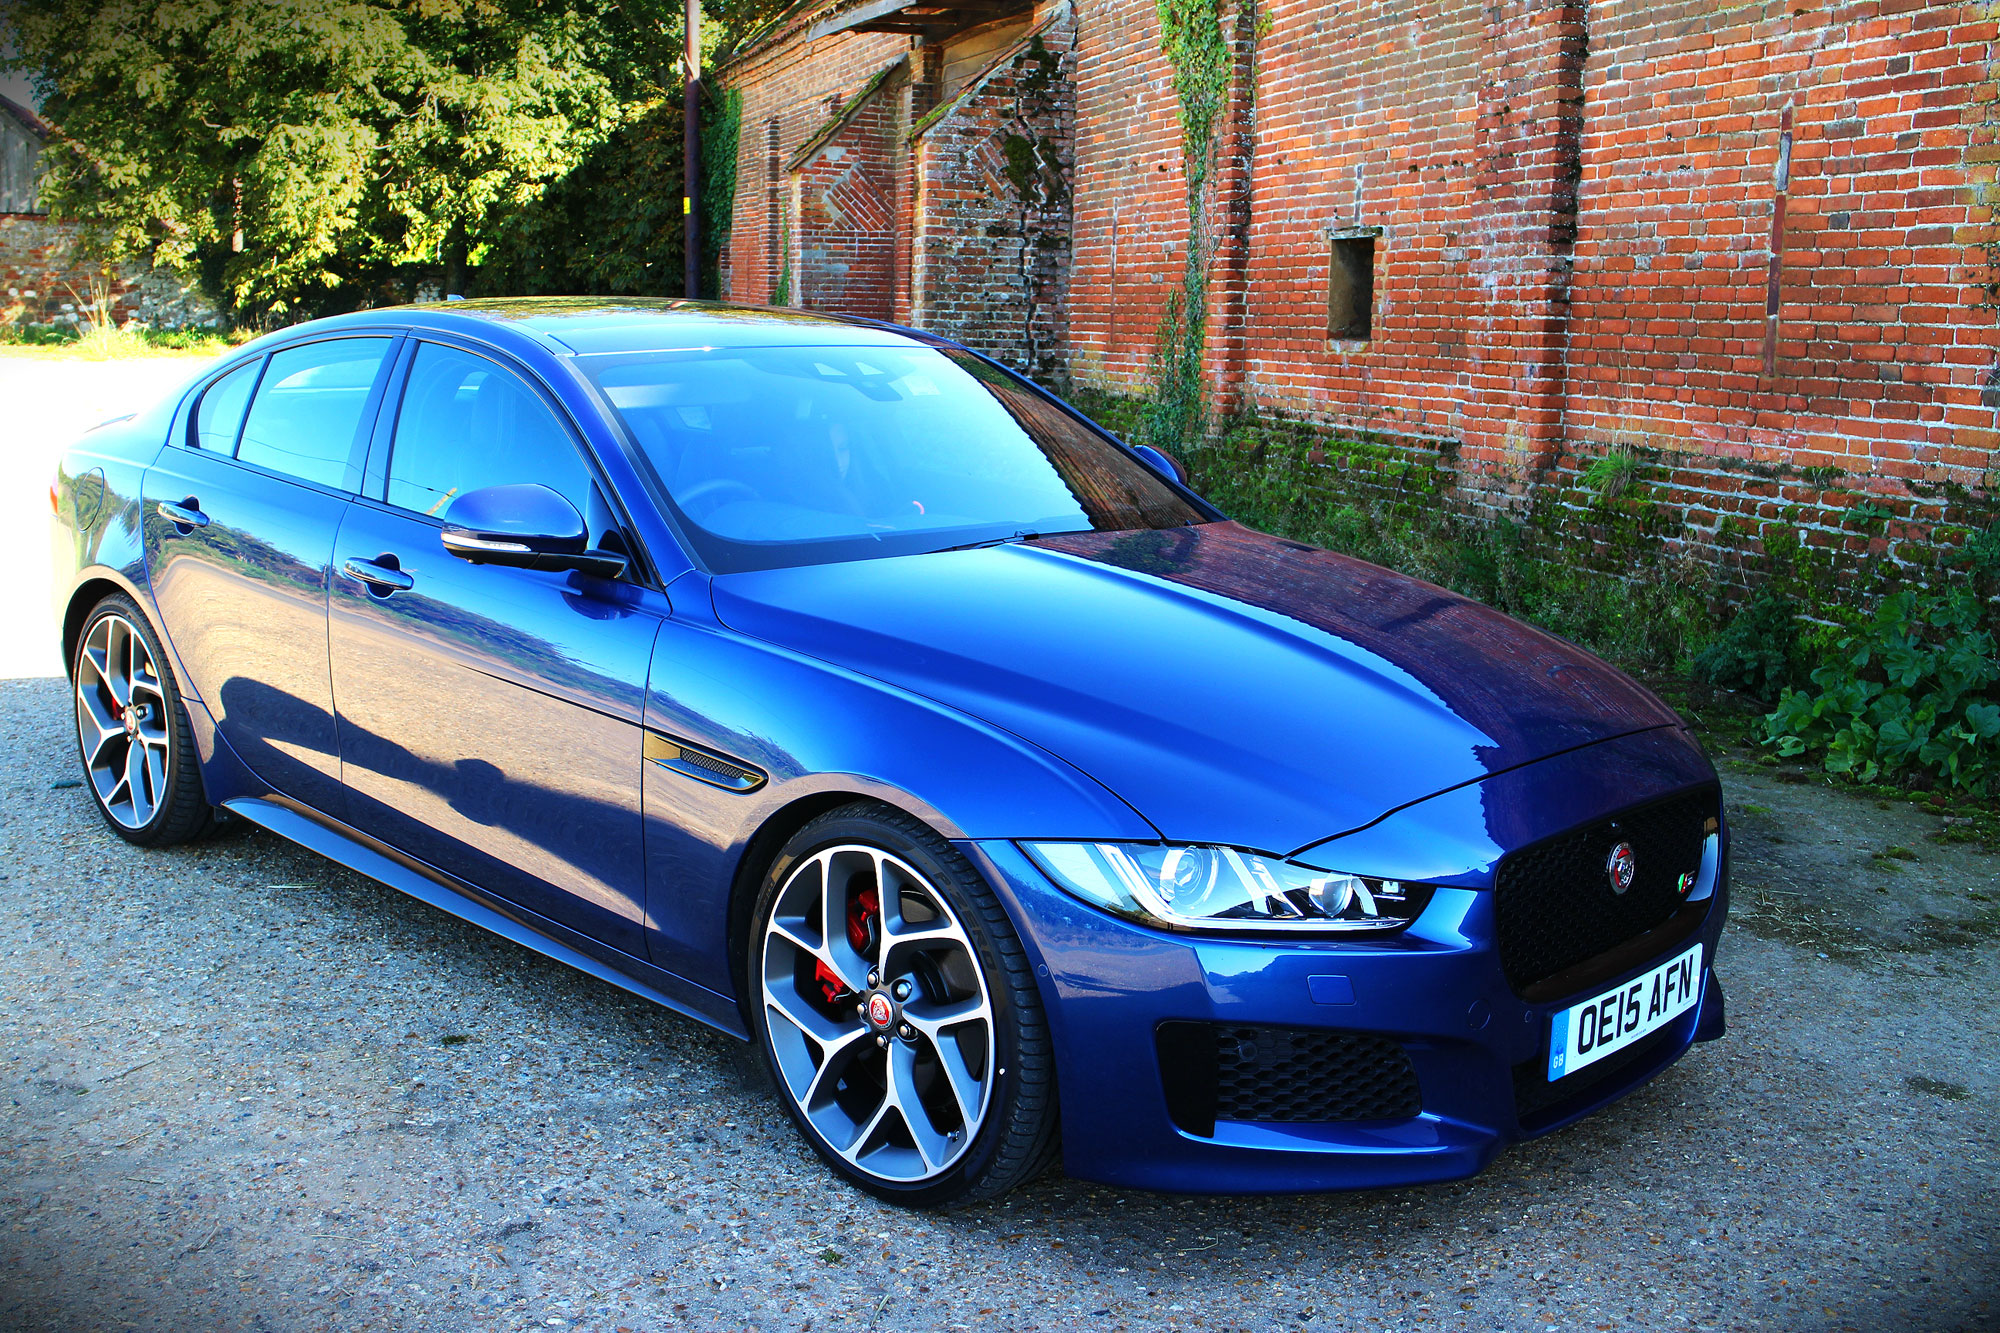 Married to the highly-responsive gearbox, the Jaguar XE S can reach 60 mph in just 4.9 seconds